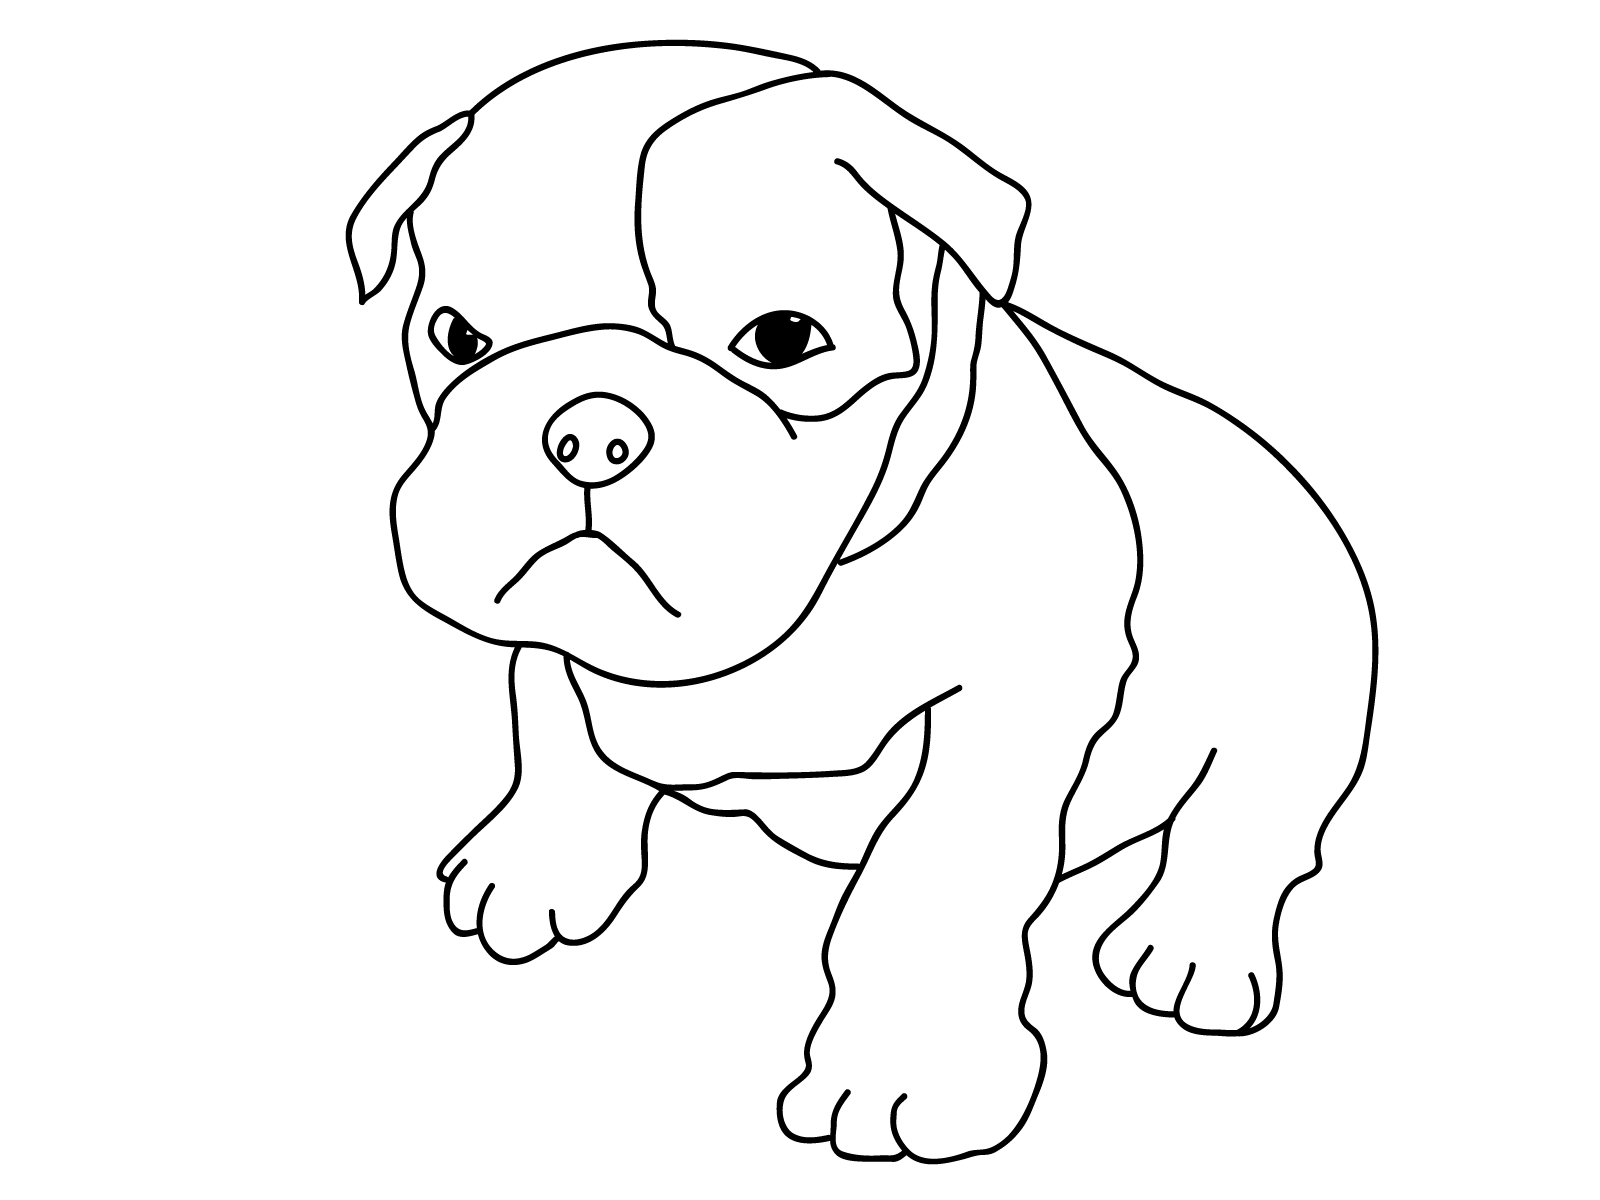 1600x1200 Pictures Drawings Of Dogs To Color,